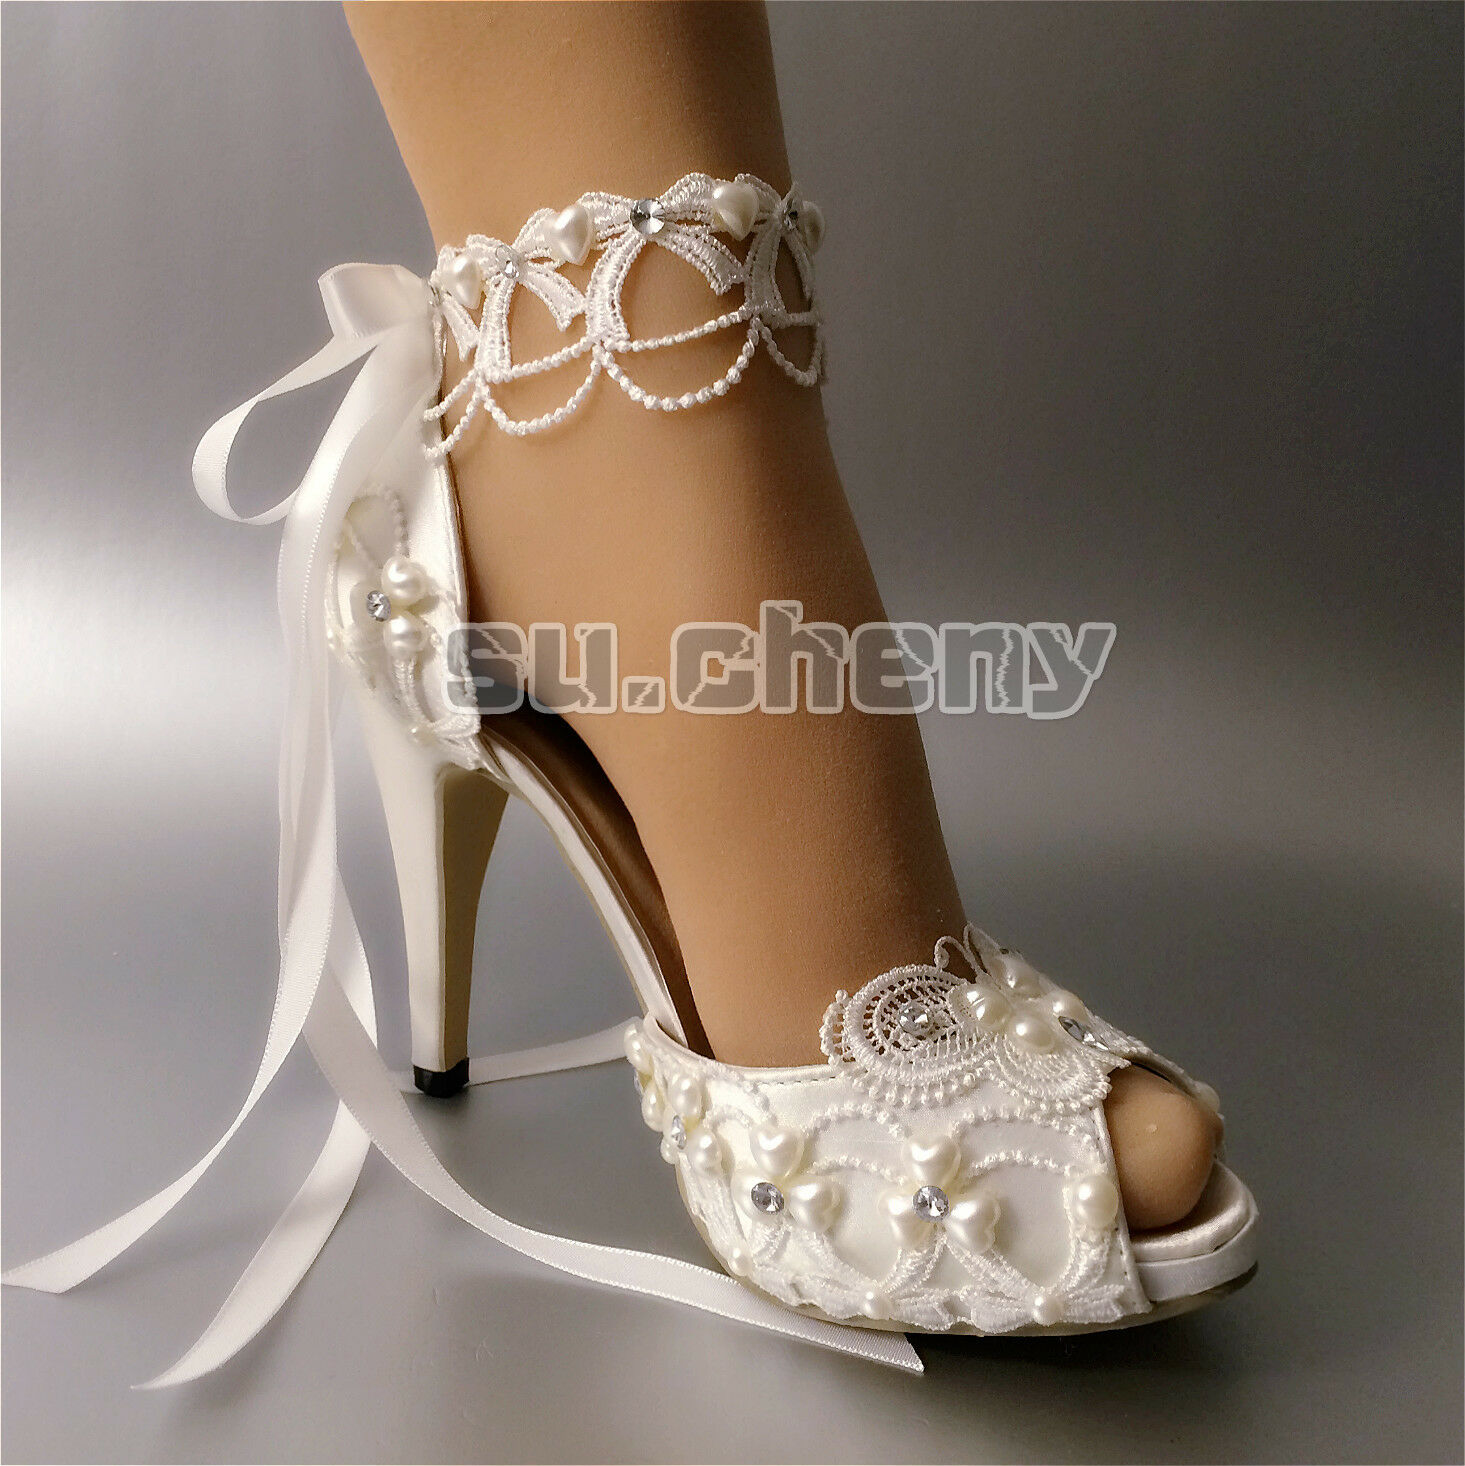 "Su.cheny Open toe 3  4"" ribbon heel Weiß ivory satin lace ribbon 4"" Wedding Bridal schuhe cfa656"